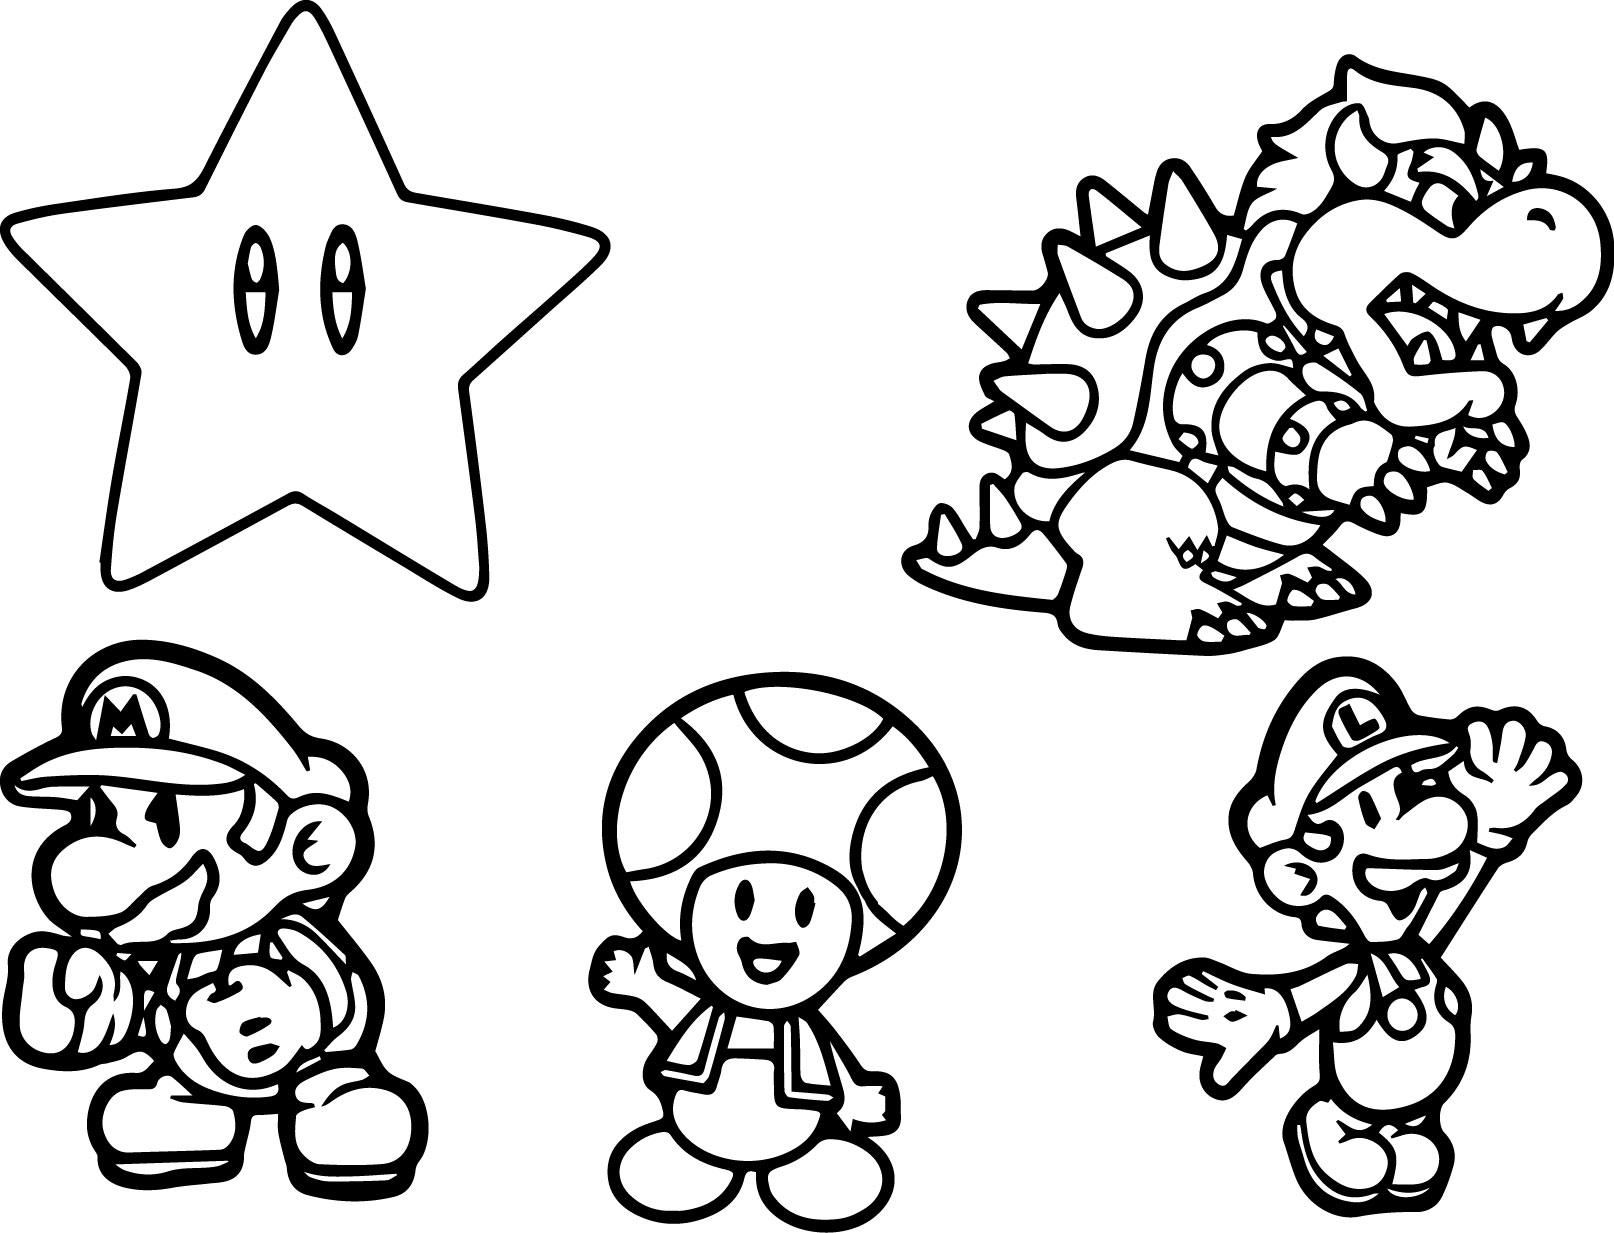 mario characters coloring pages - photo#30